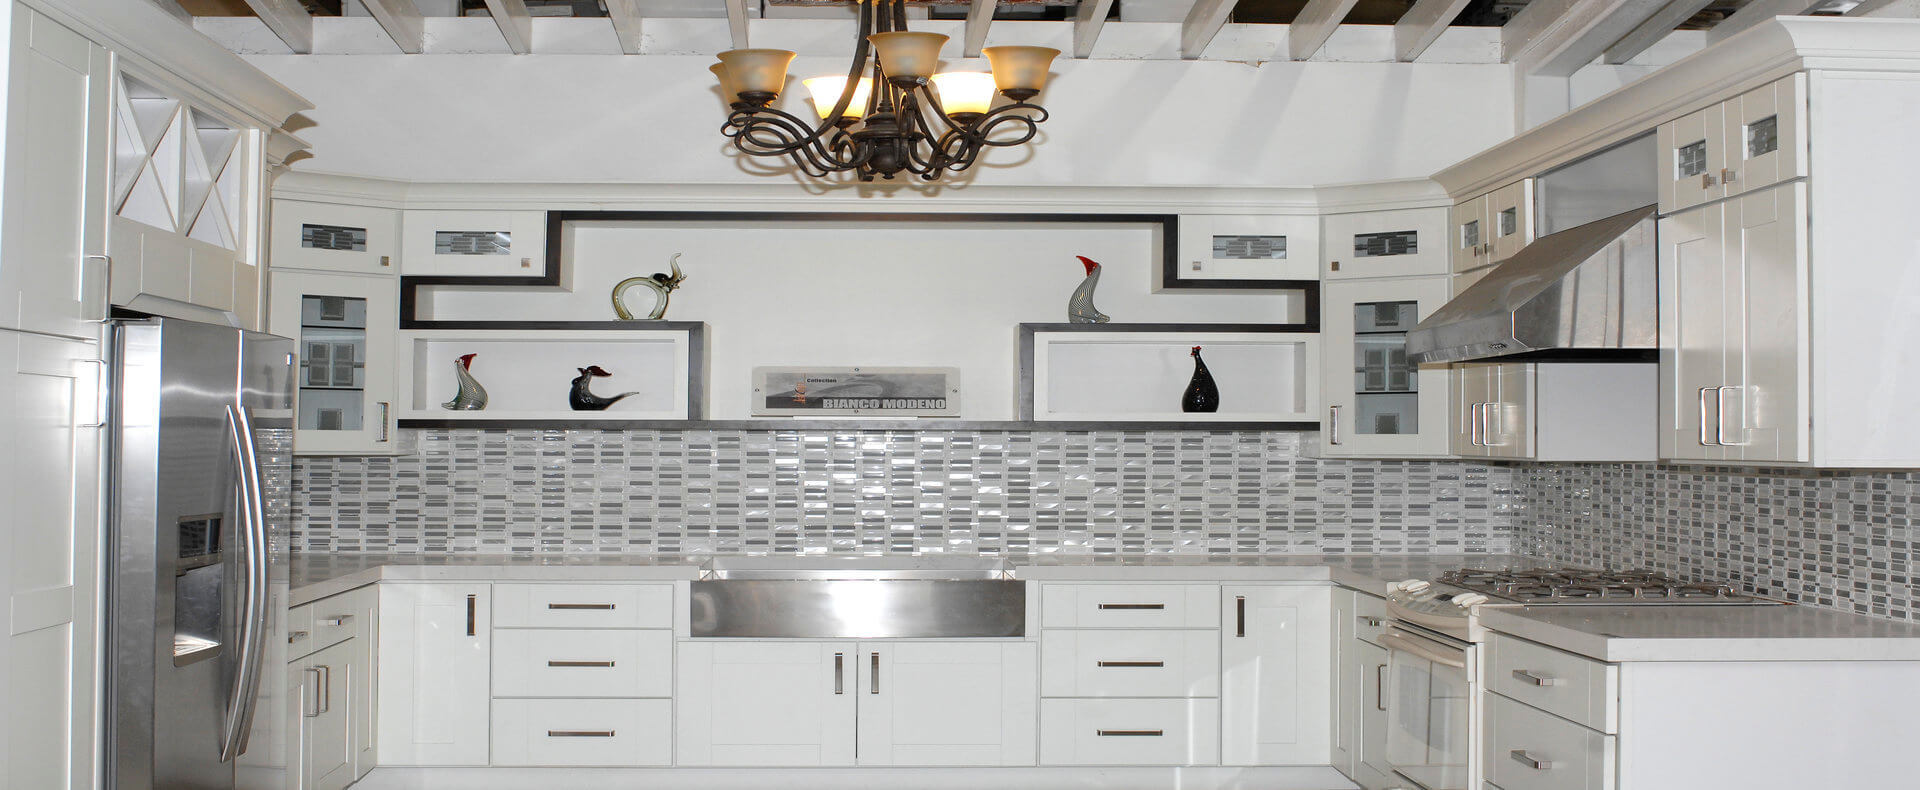 405 Cabinets & Stone » Products